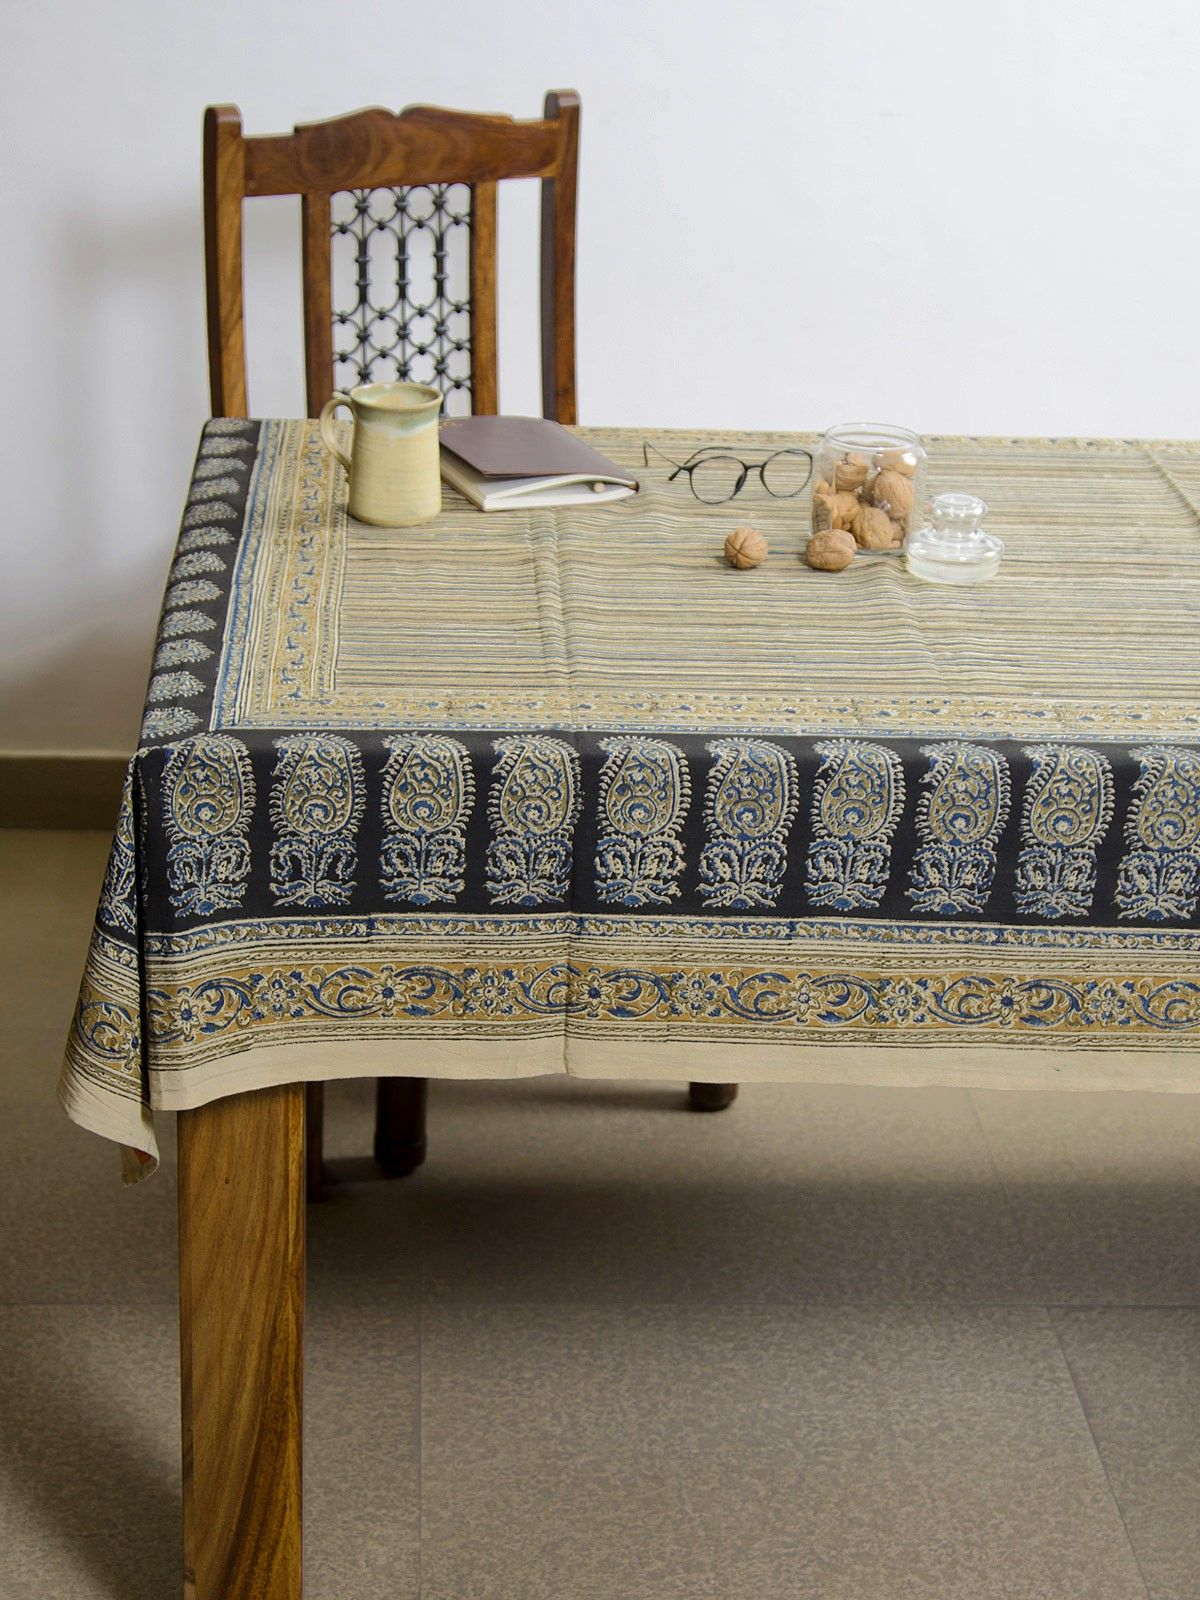 Charcoal Amra Kalamkari 4 seater table cover